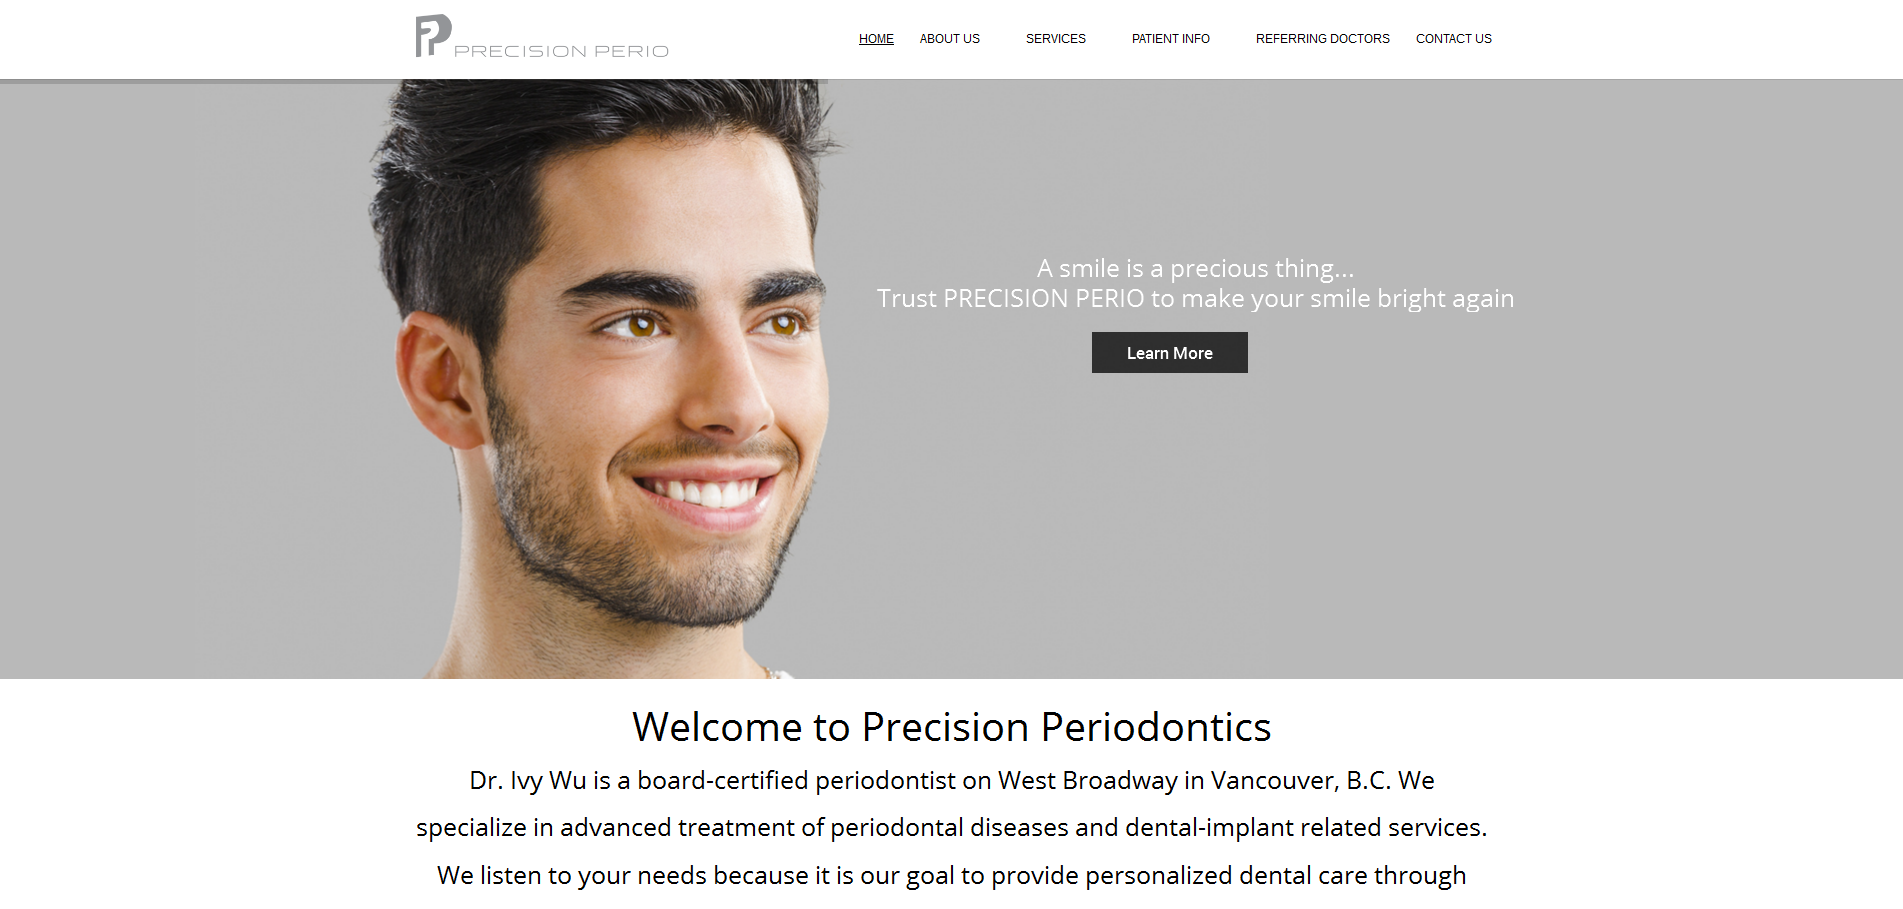 Precision Periodontics | vancouver dental website